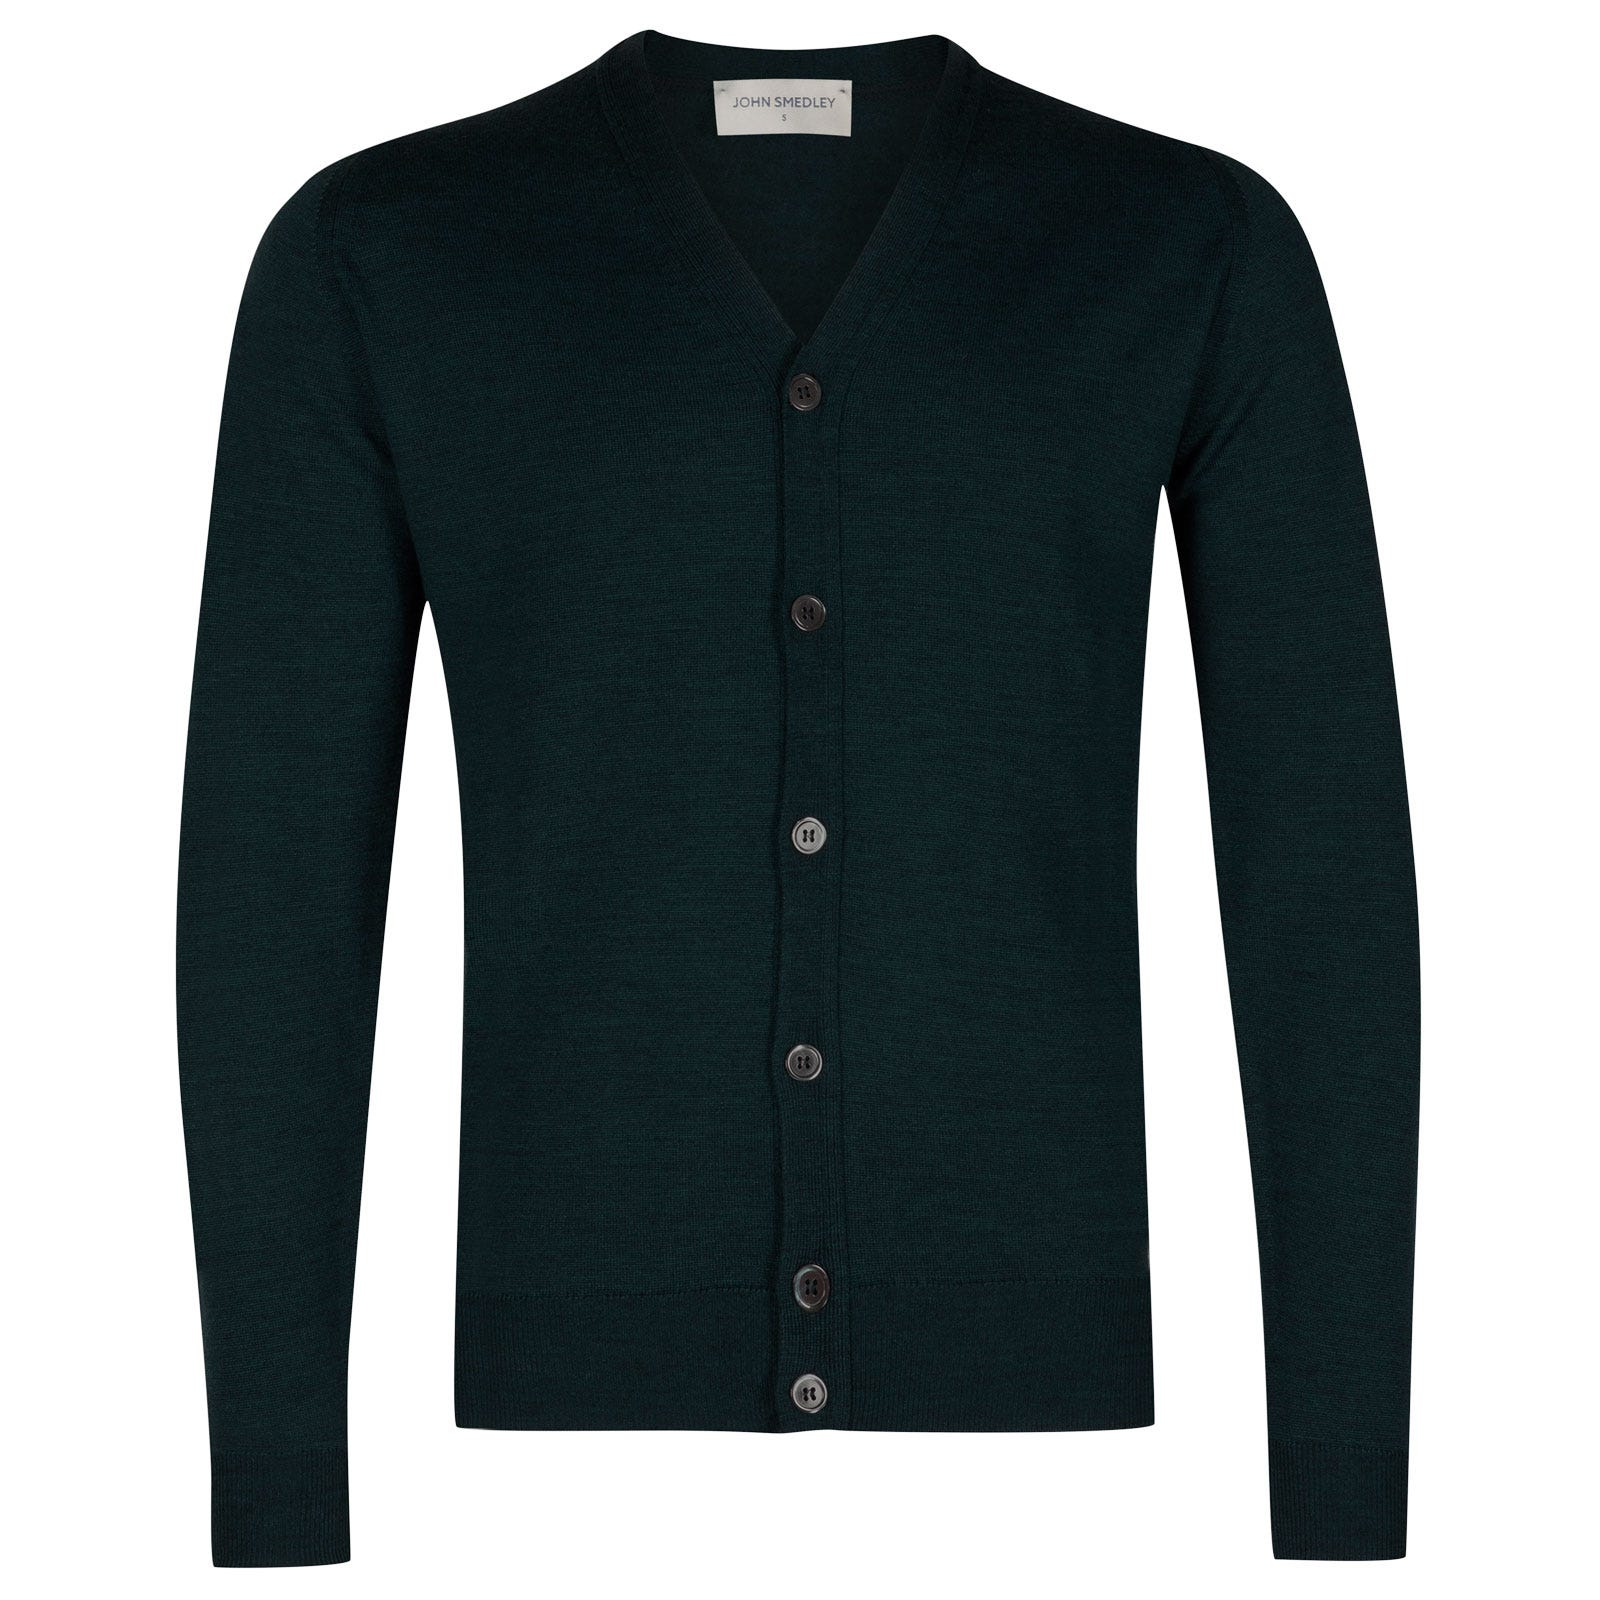 John Smedley burley Merino Wool Cardigan in Racing Green-XL